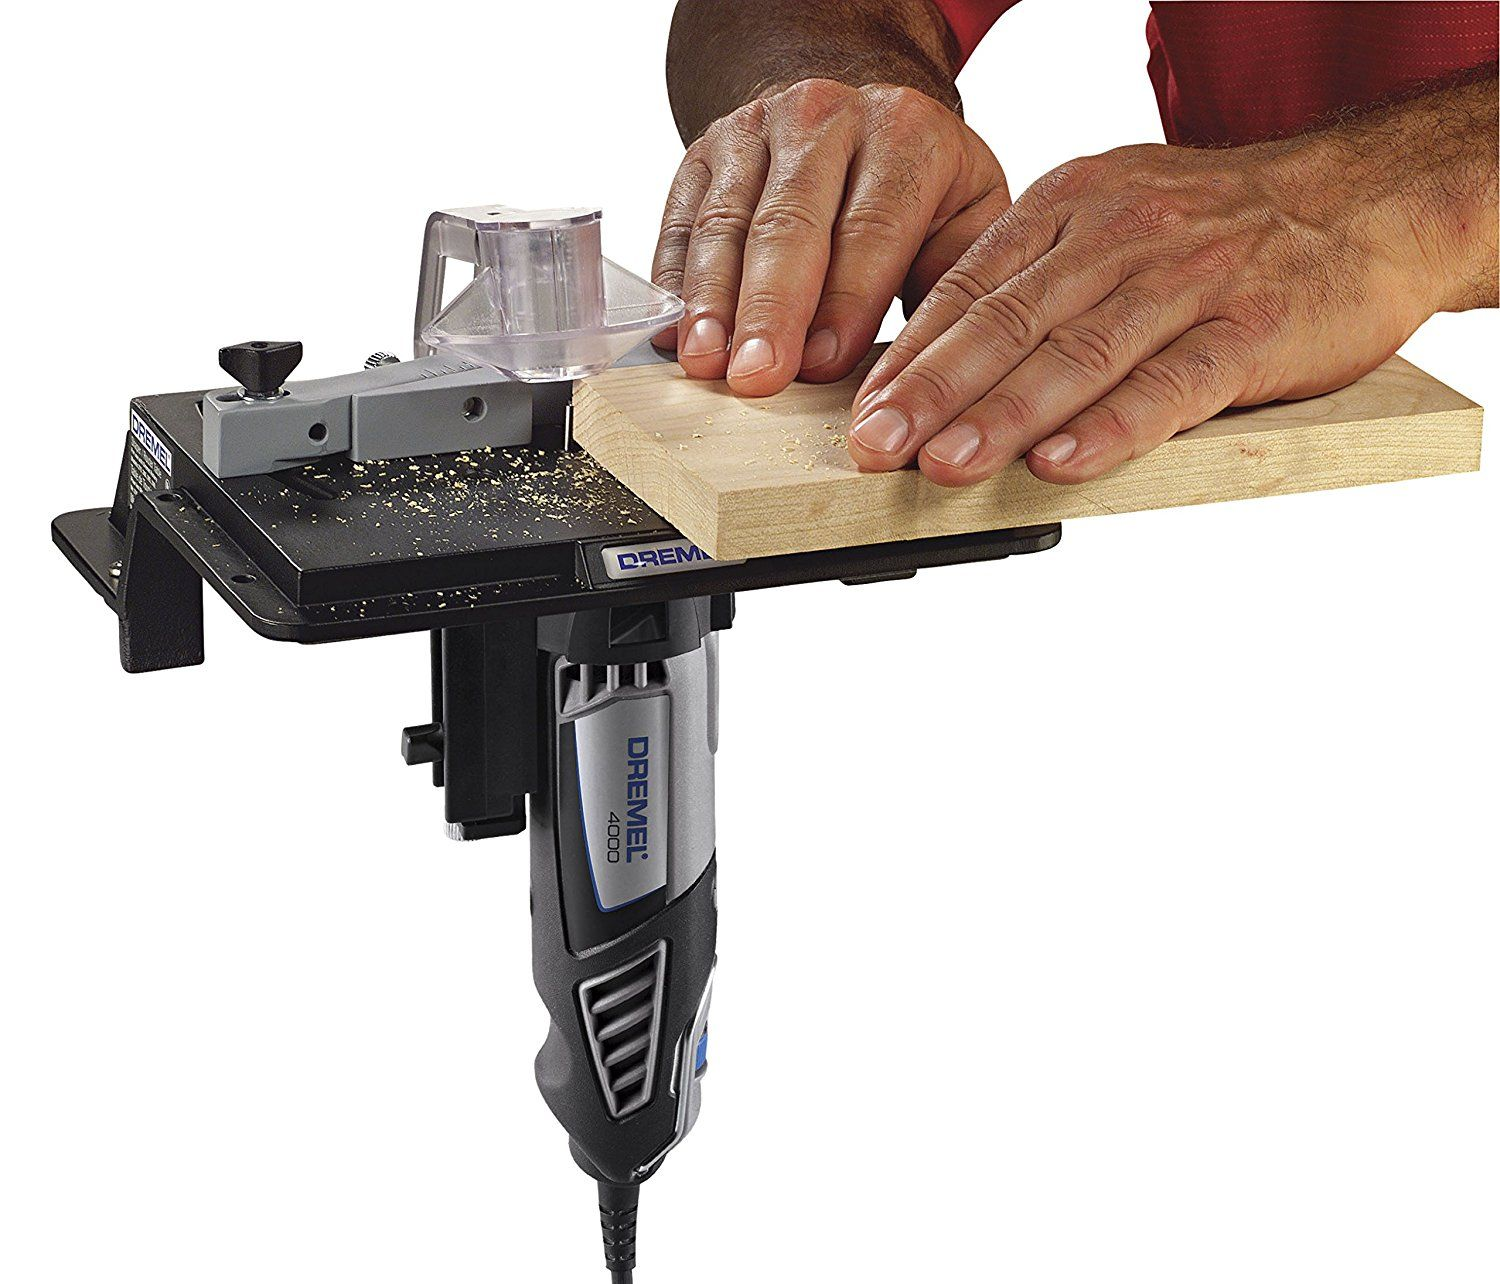 Dremel 231 shaperrouter table amazonca tools home